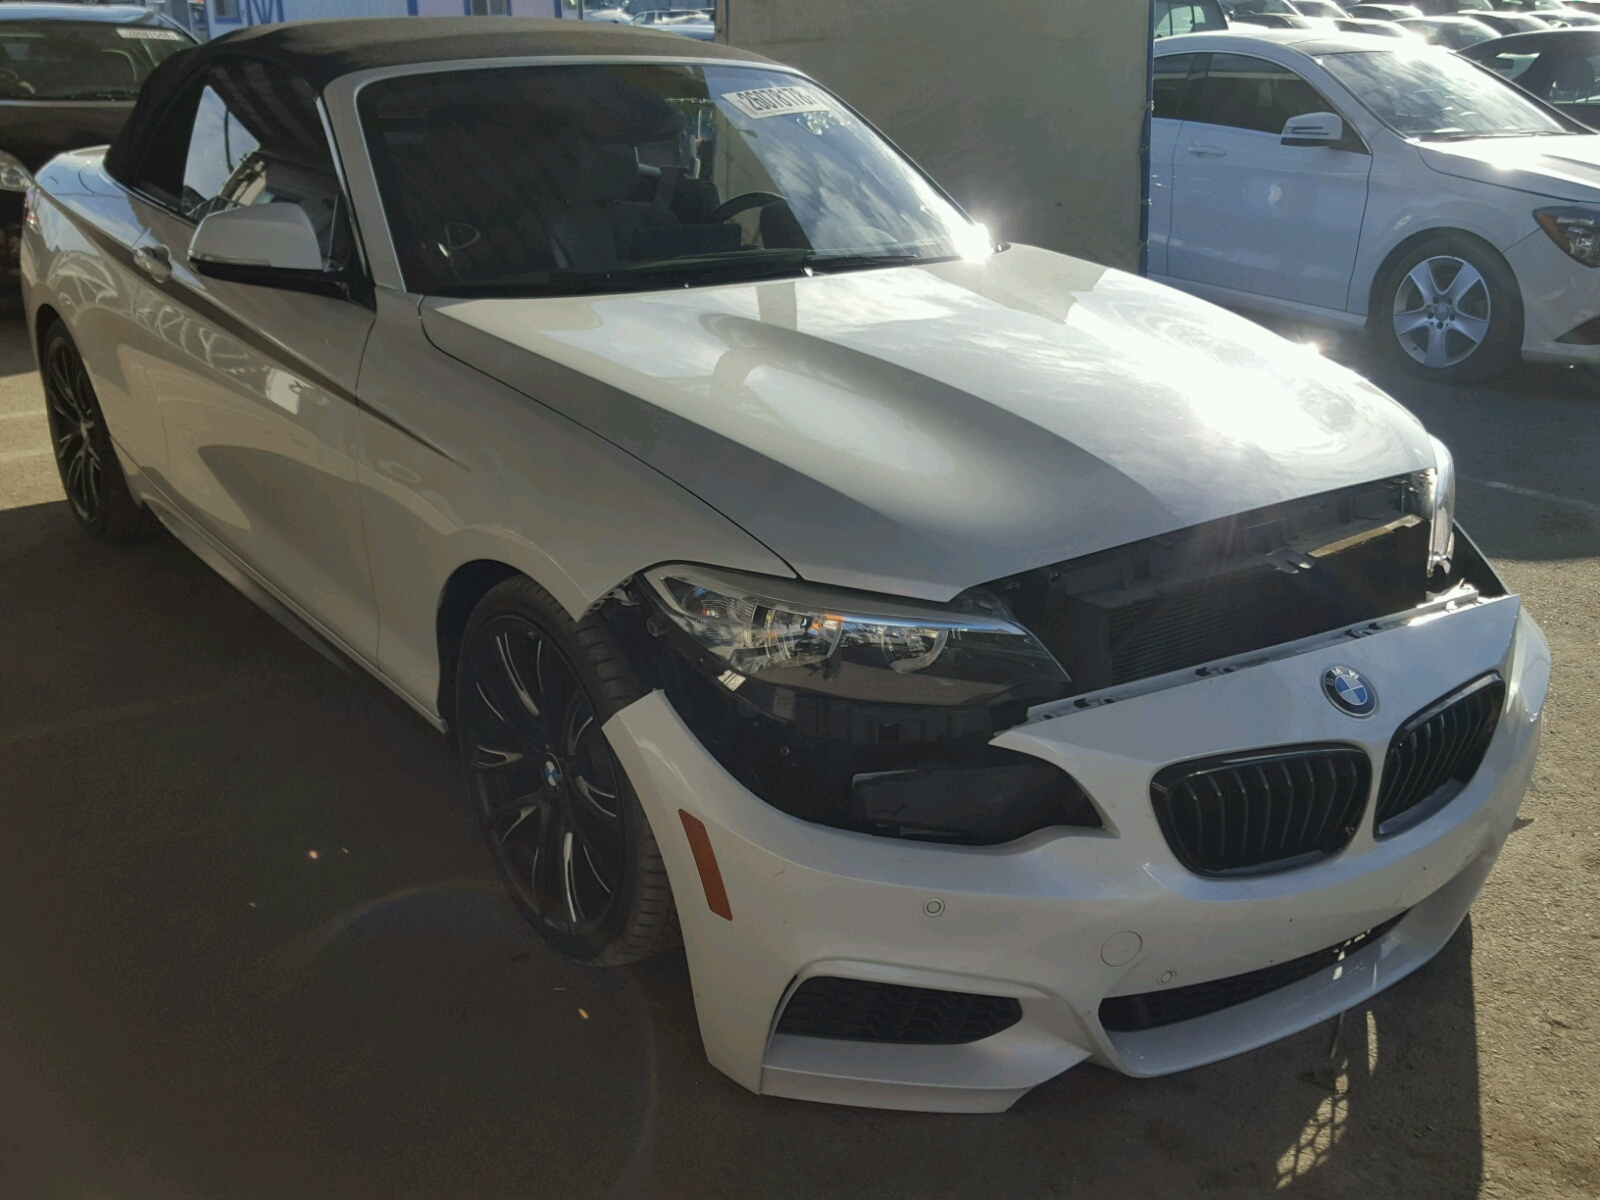 Auto Auction Ended On Vin Wba3r5c50fk371967 2015 Bmw 435 Xi In Ct Hartford